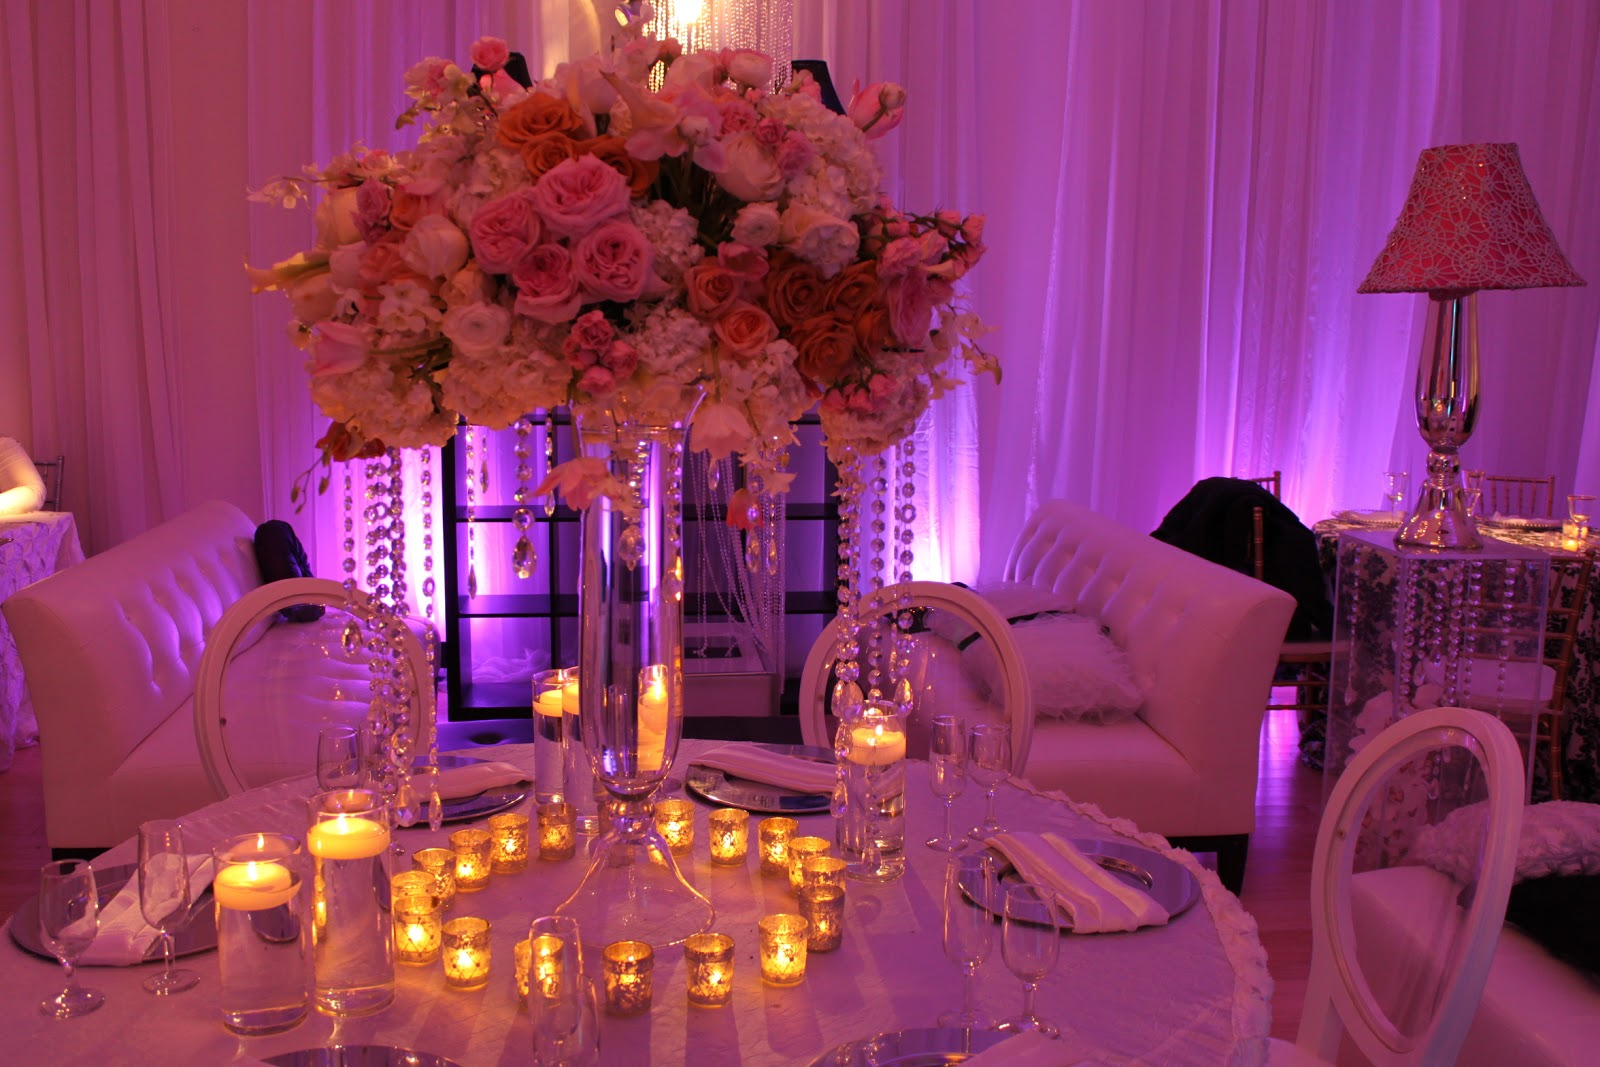 Weddings florist washington dc for Floral arrangements for wedding reception centerpieces